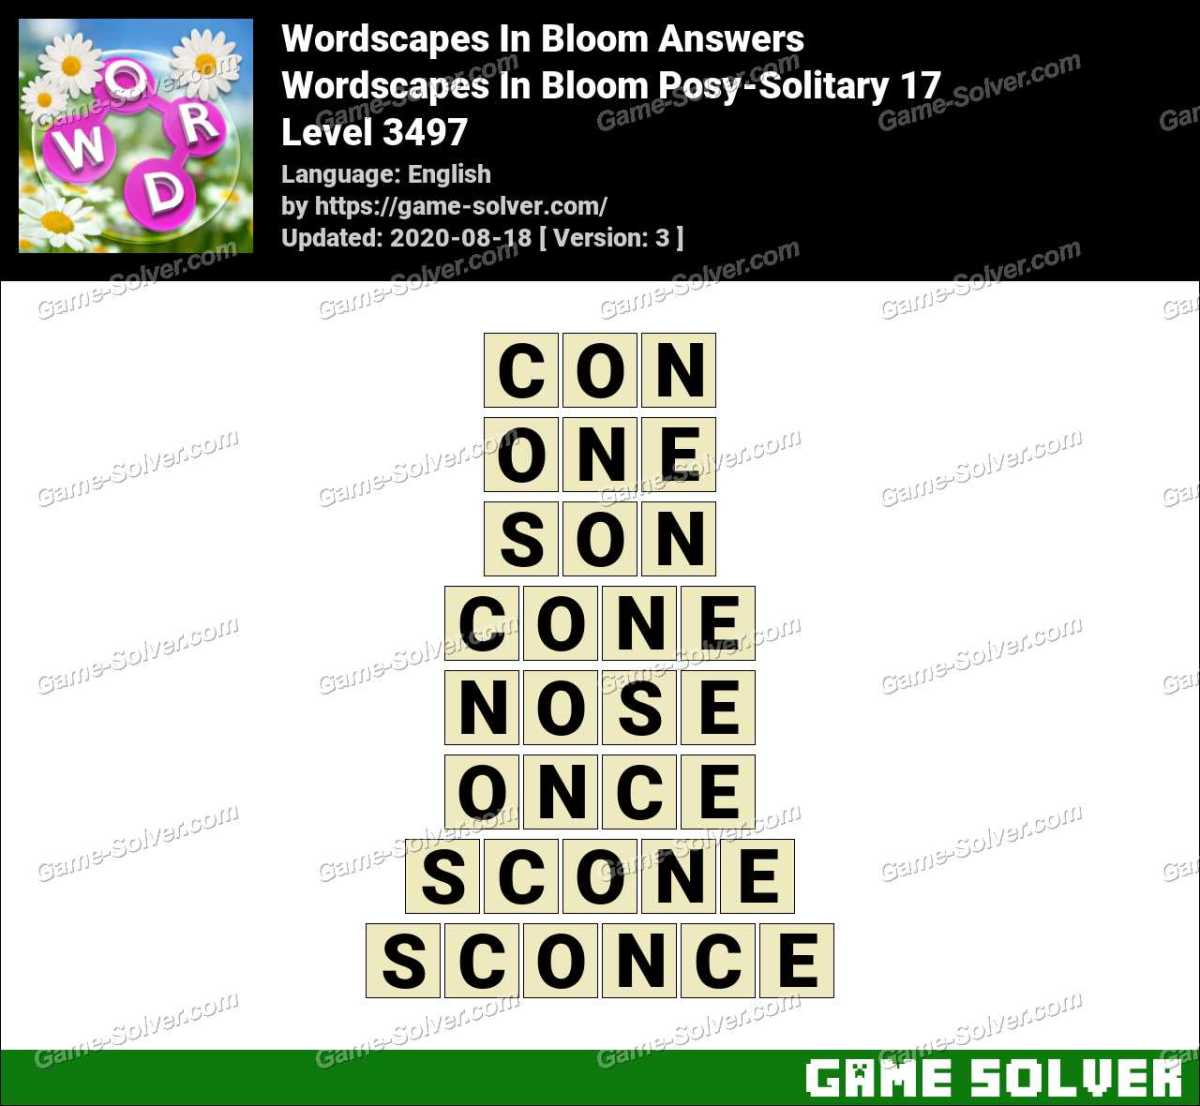 Wordscapes In Bloom Posy-Solitary 17 Answers